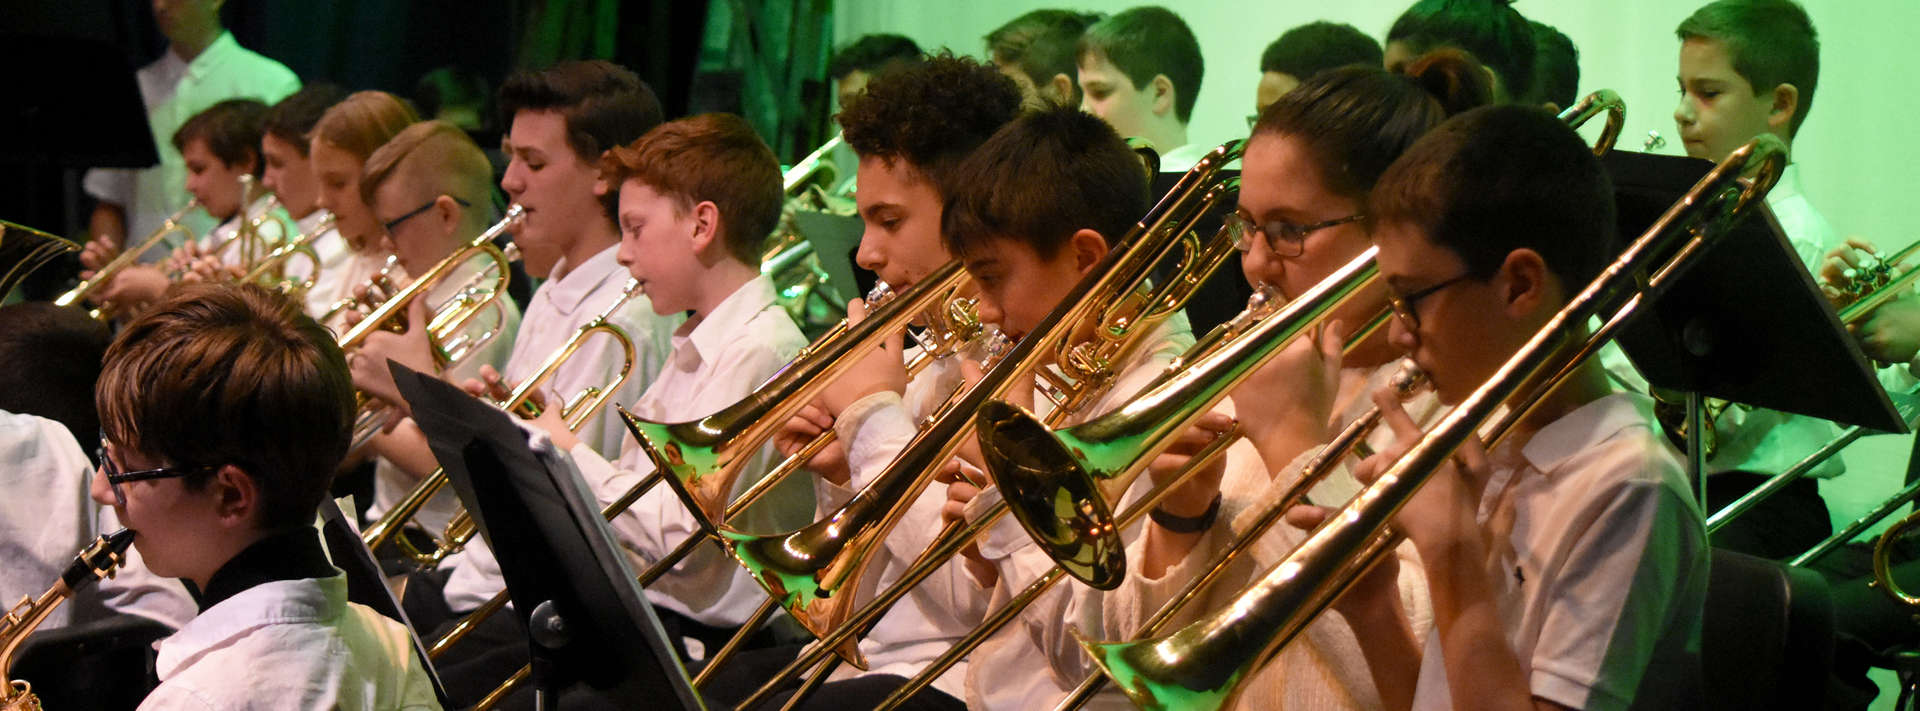 Students playing brass instruments in the band